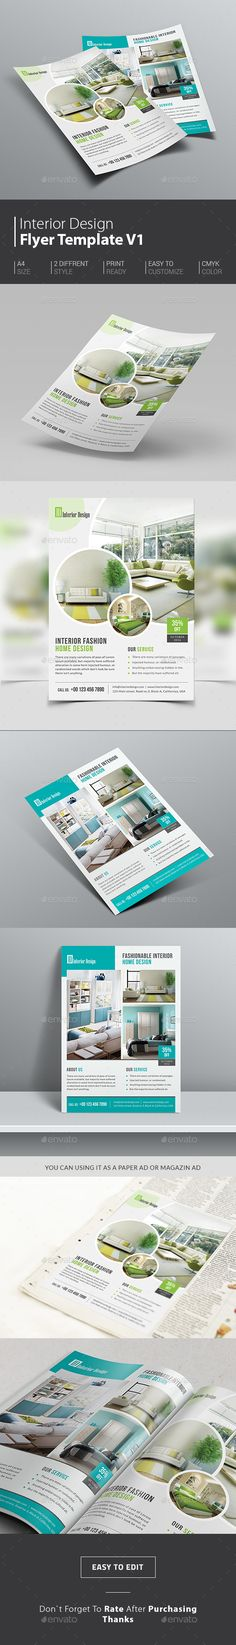 Interior Design Flyer Template-best trending design for bagging more clients.  http://graphicriver.net/item/interior-design-flyer/14911586?ref=themedevisers